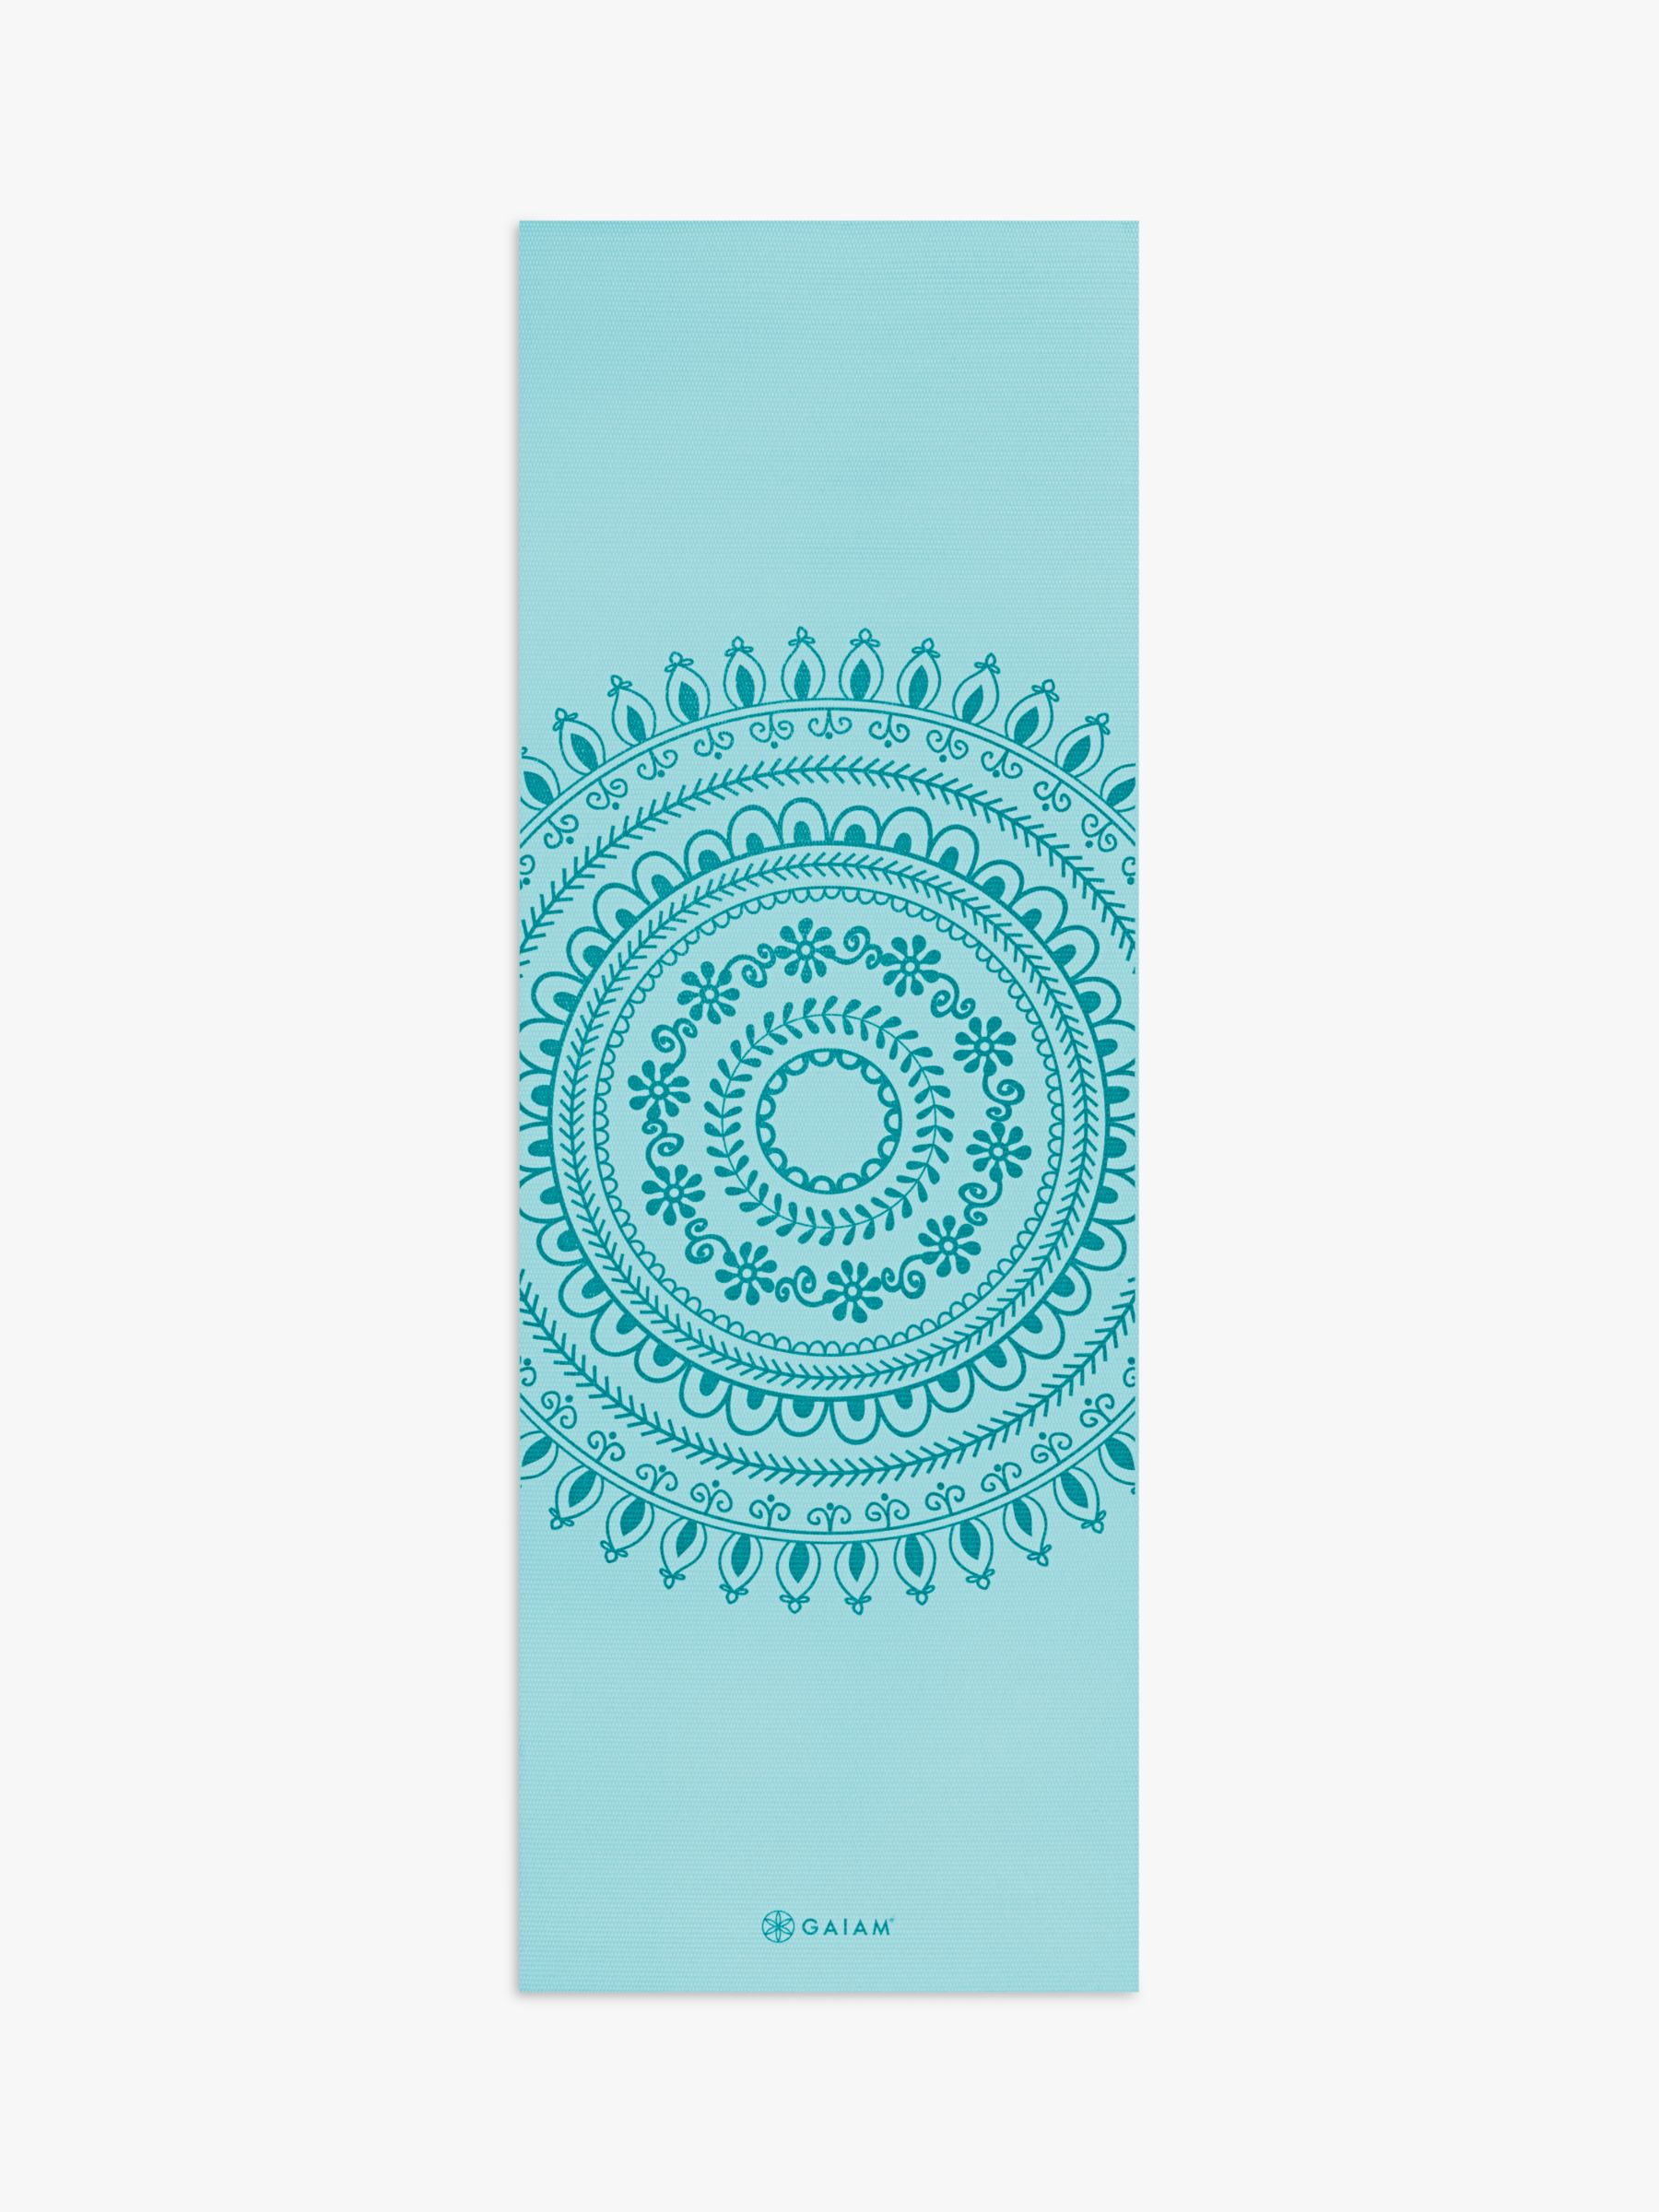 Gaiam Gaiam Premium 5mm Yoga Mat, Marrakesh